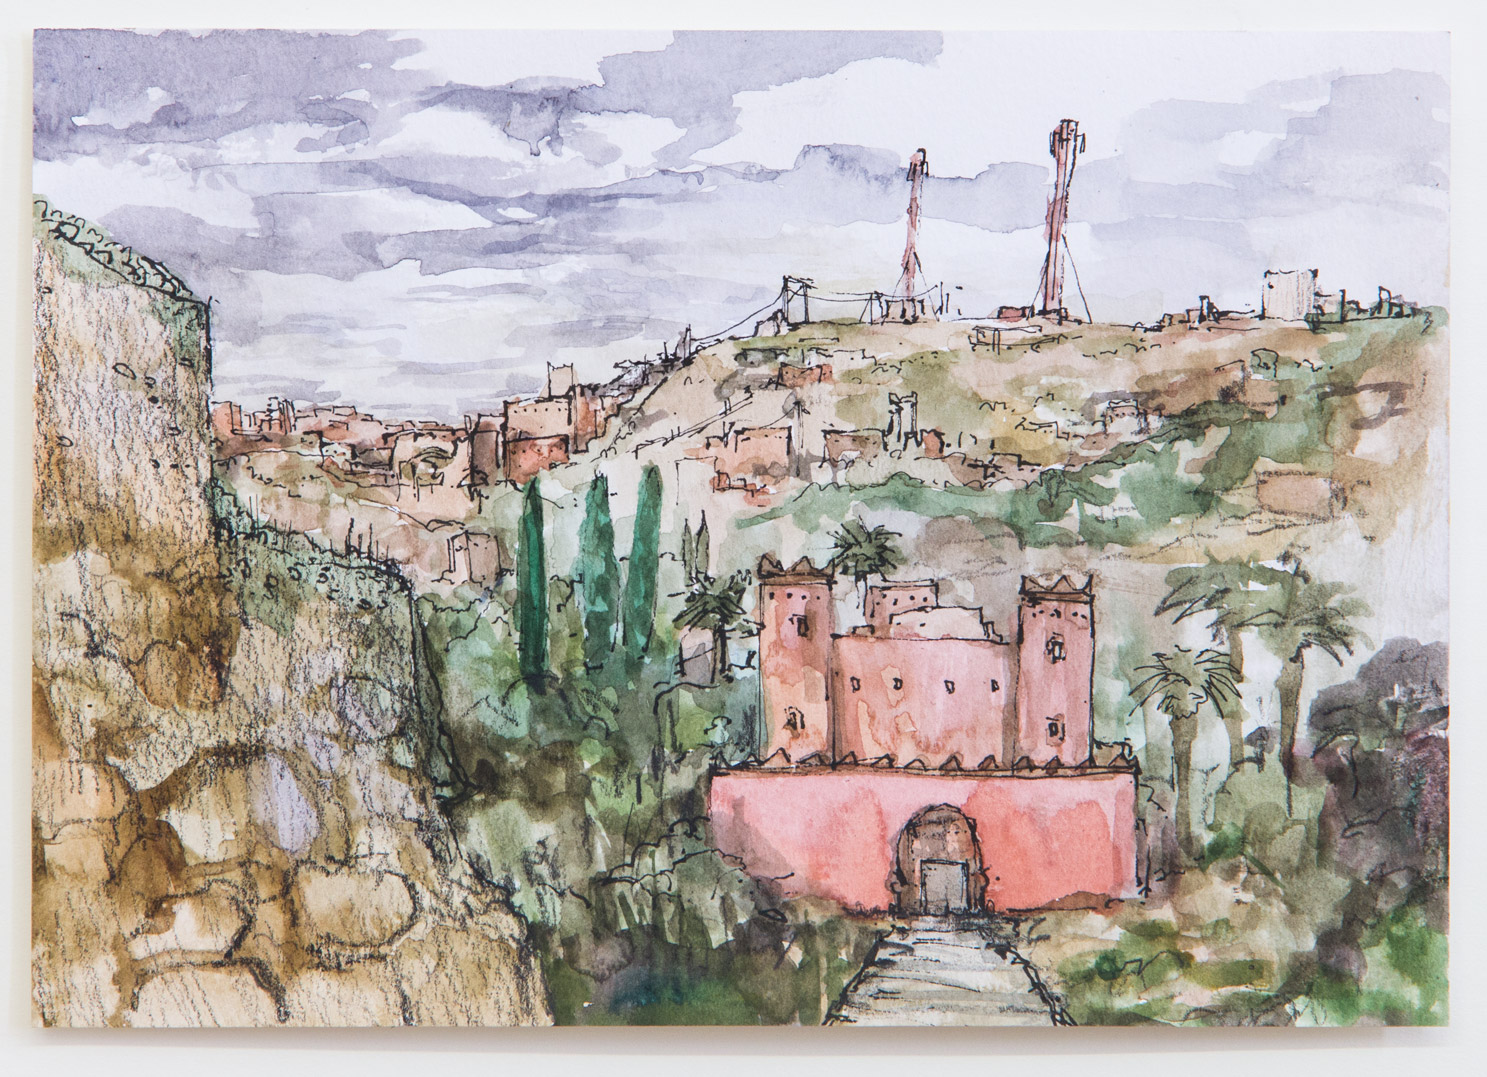 Ouarzazate; 21 x 15 cm; watercolour, ink and pencil on paper; 2018